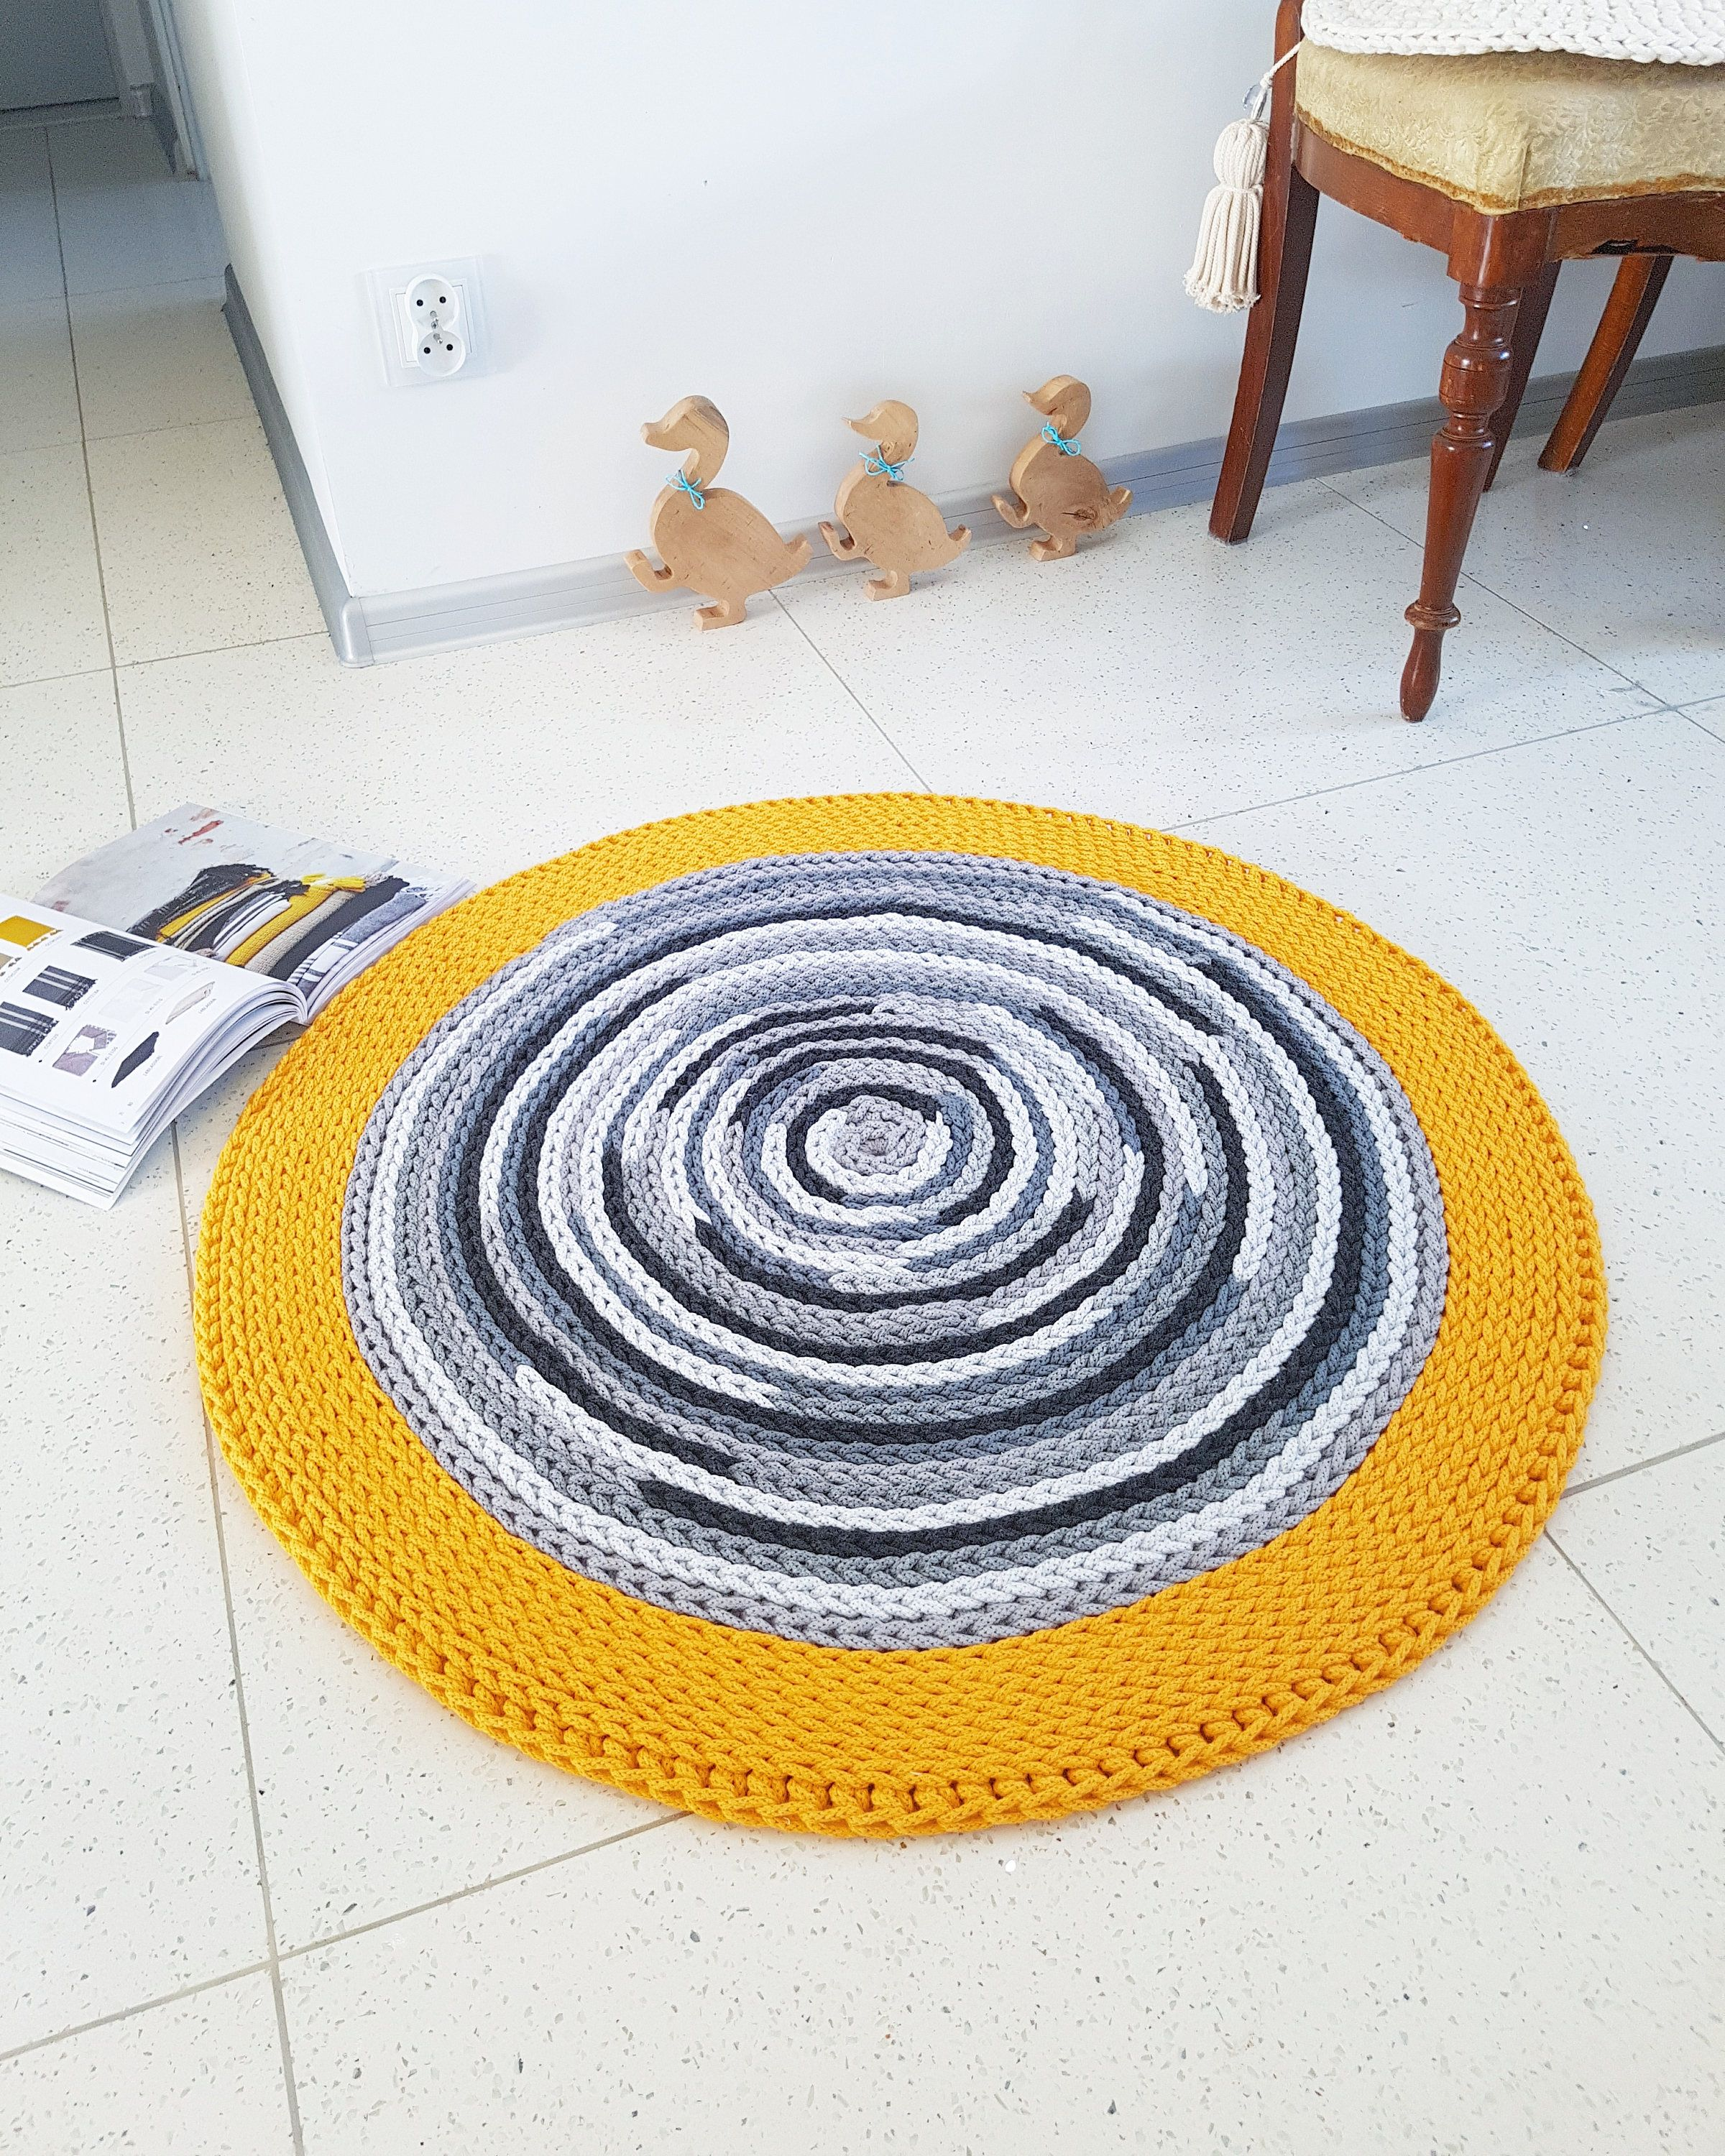 Handmade chunky gray round simple modern nursery crochet rug handmade chunky gray round simple modern nursery crochet rug washable natural cotton rug round bankloansurffo Choice Image